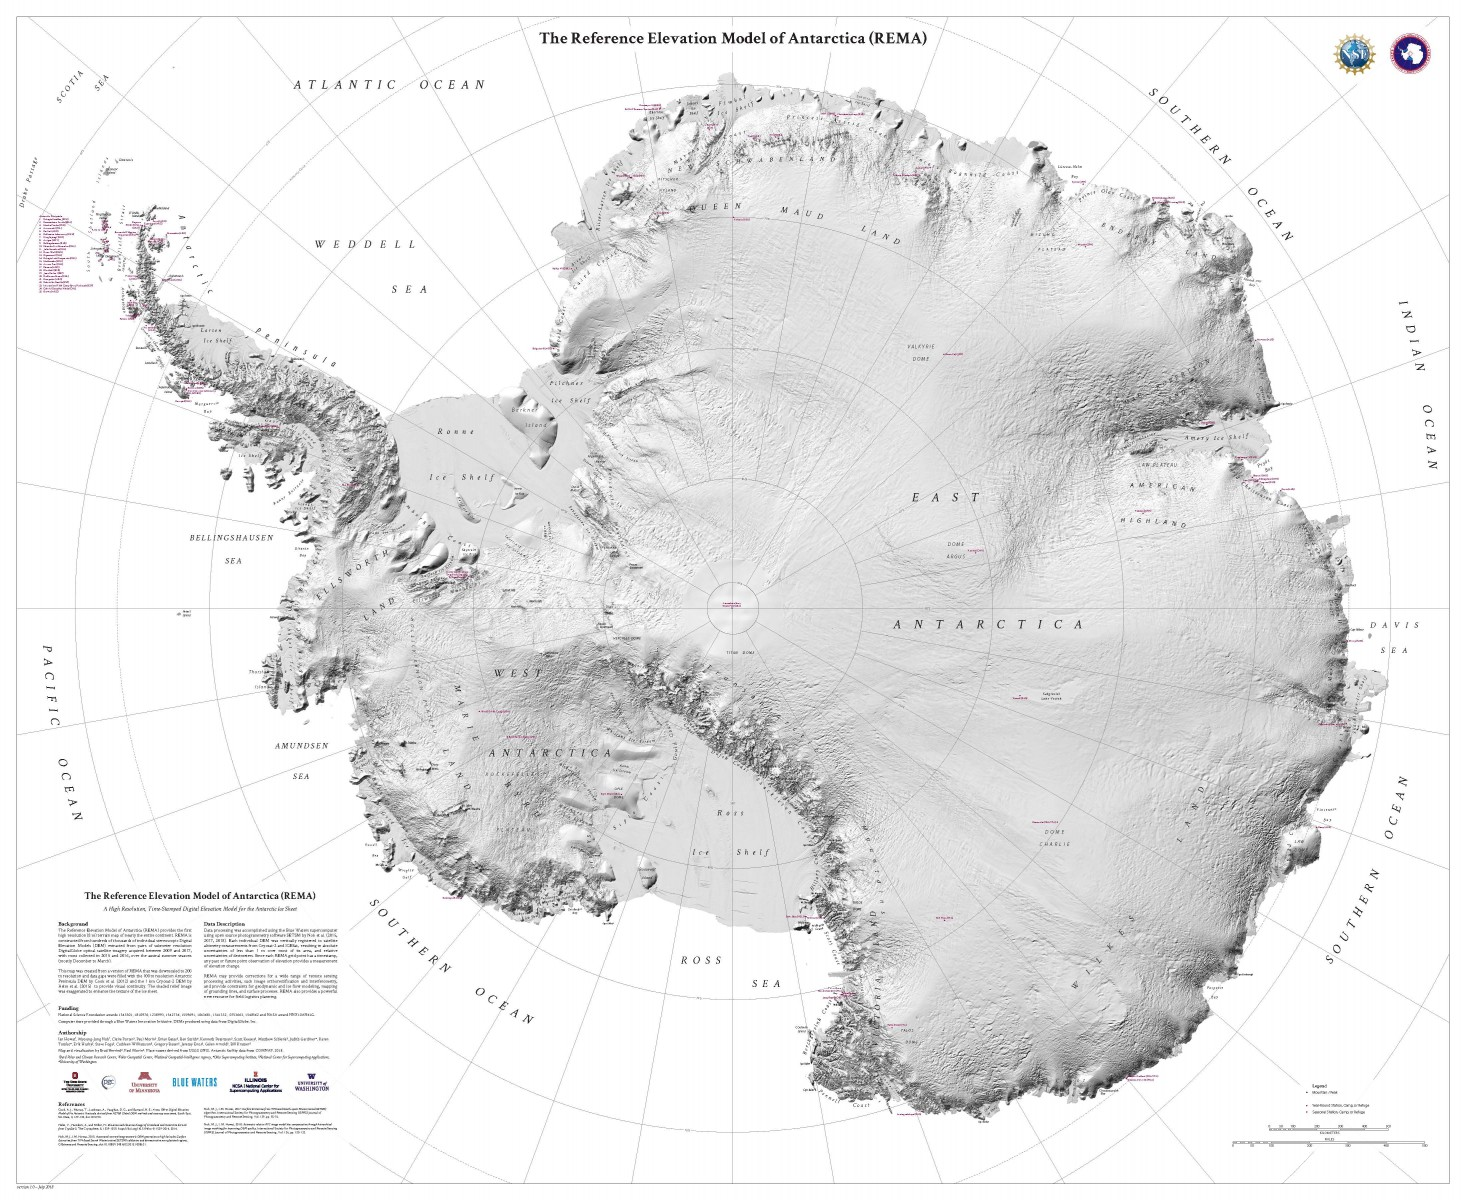 medium resolution of reference elevation model of antarctica